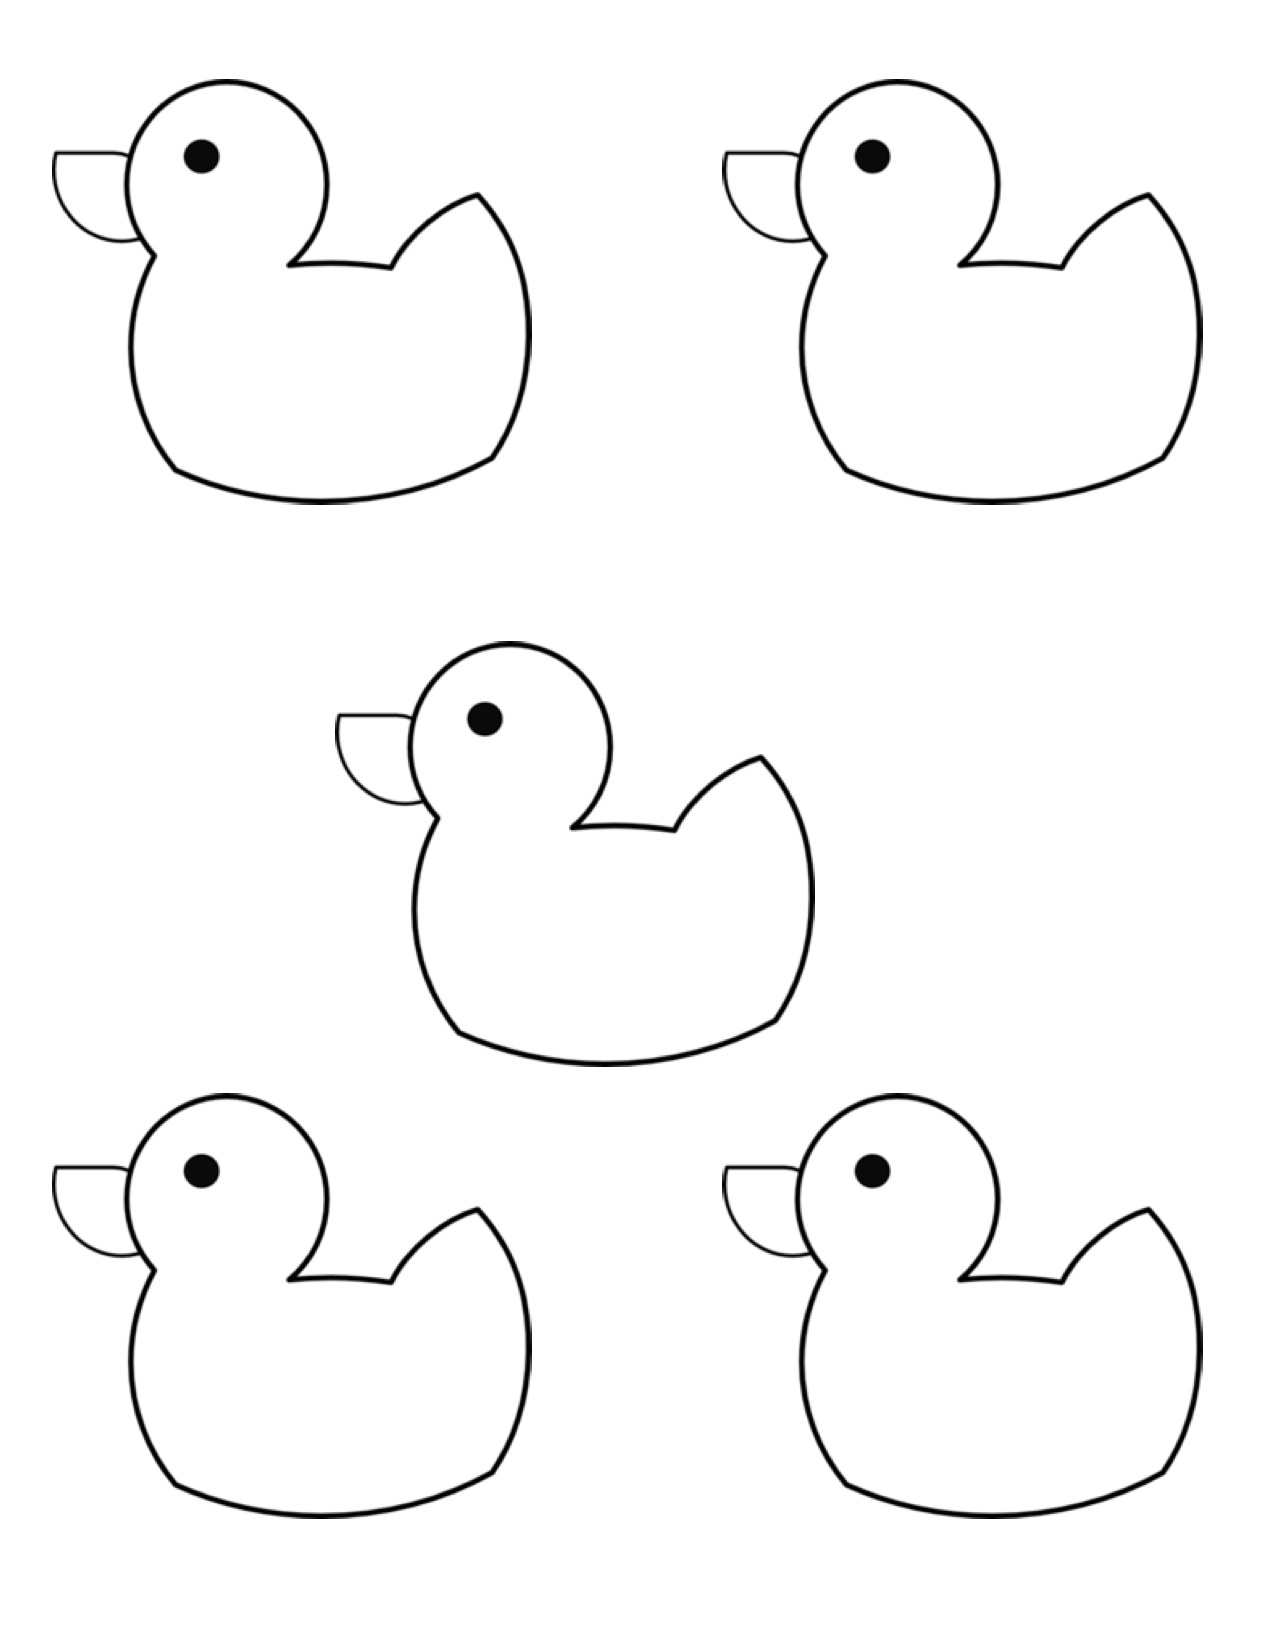 It's just a photo of Astounding Rubber Duck Printable